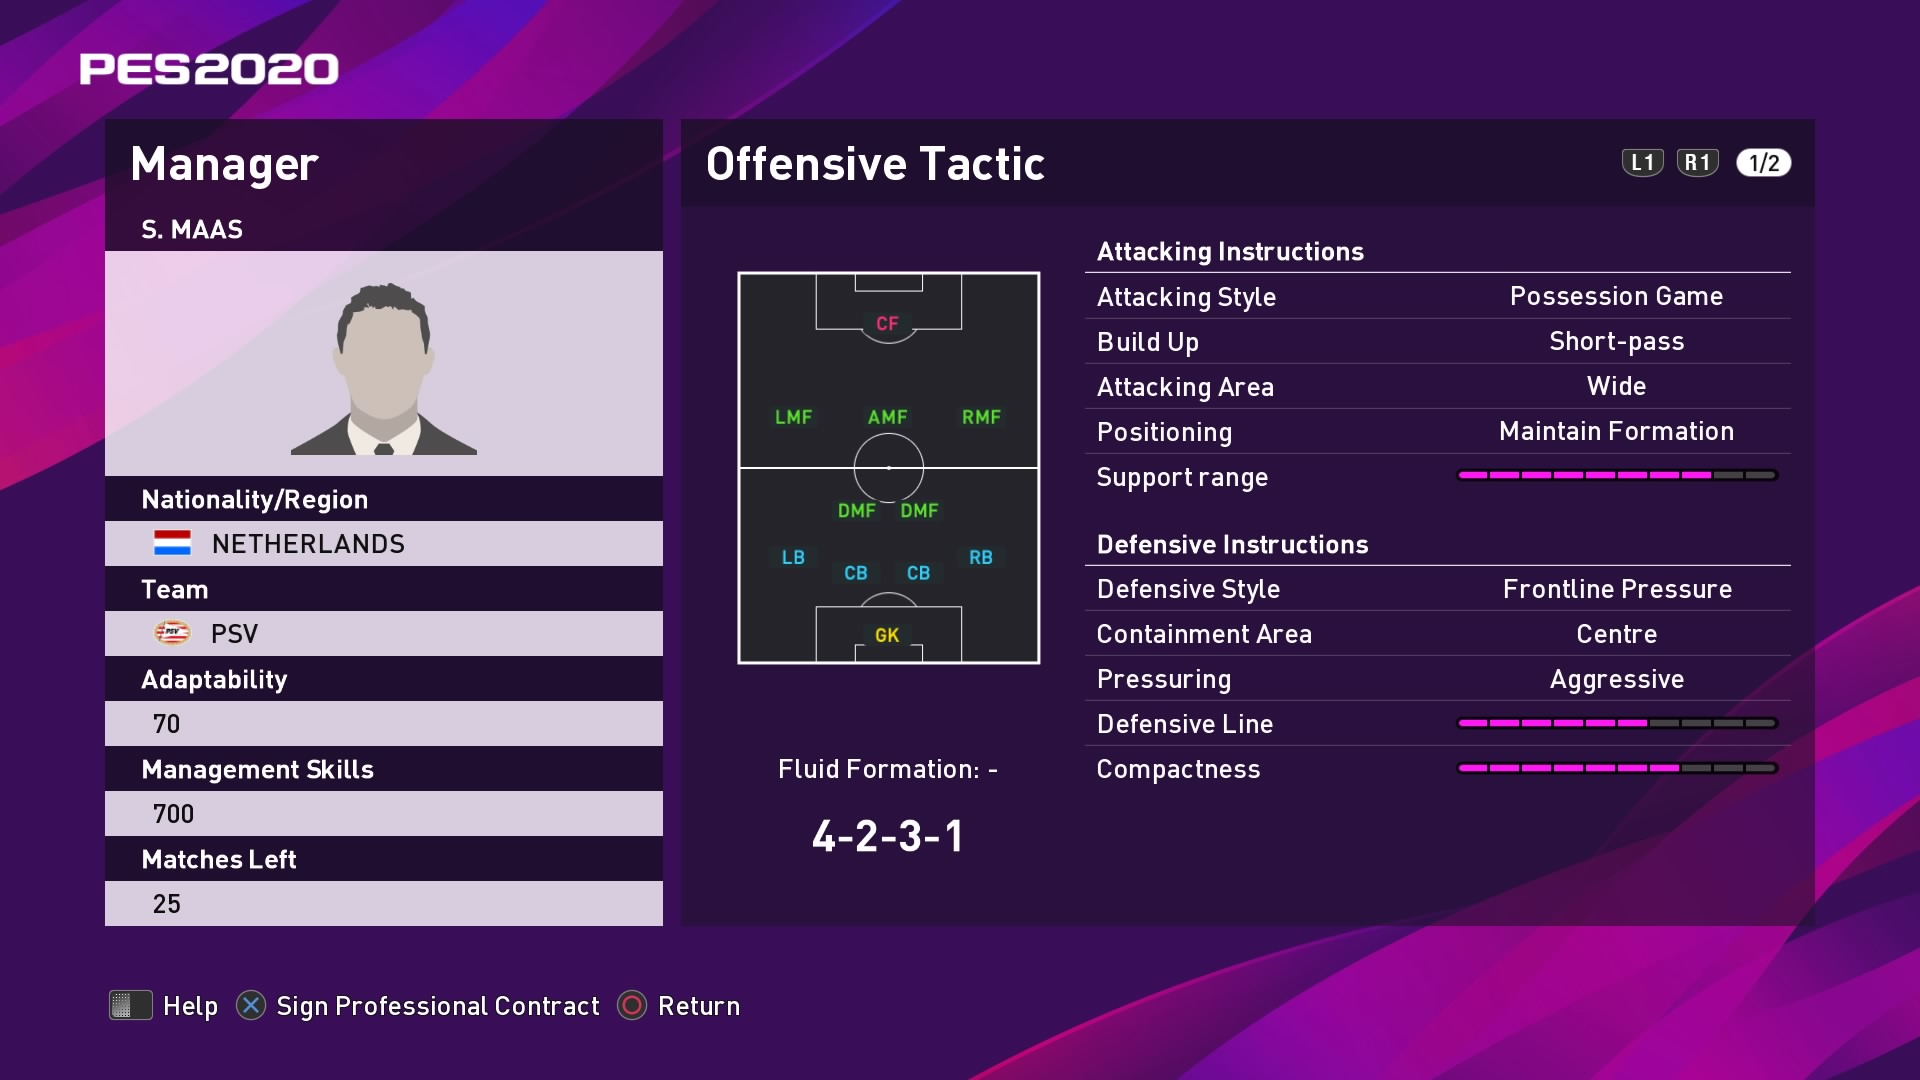 S. Maas (Ernest Faber) Offensive Tactic in PES 2020 myClub